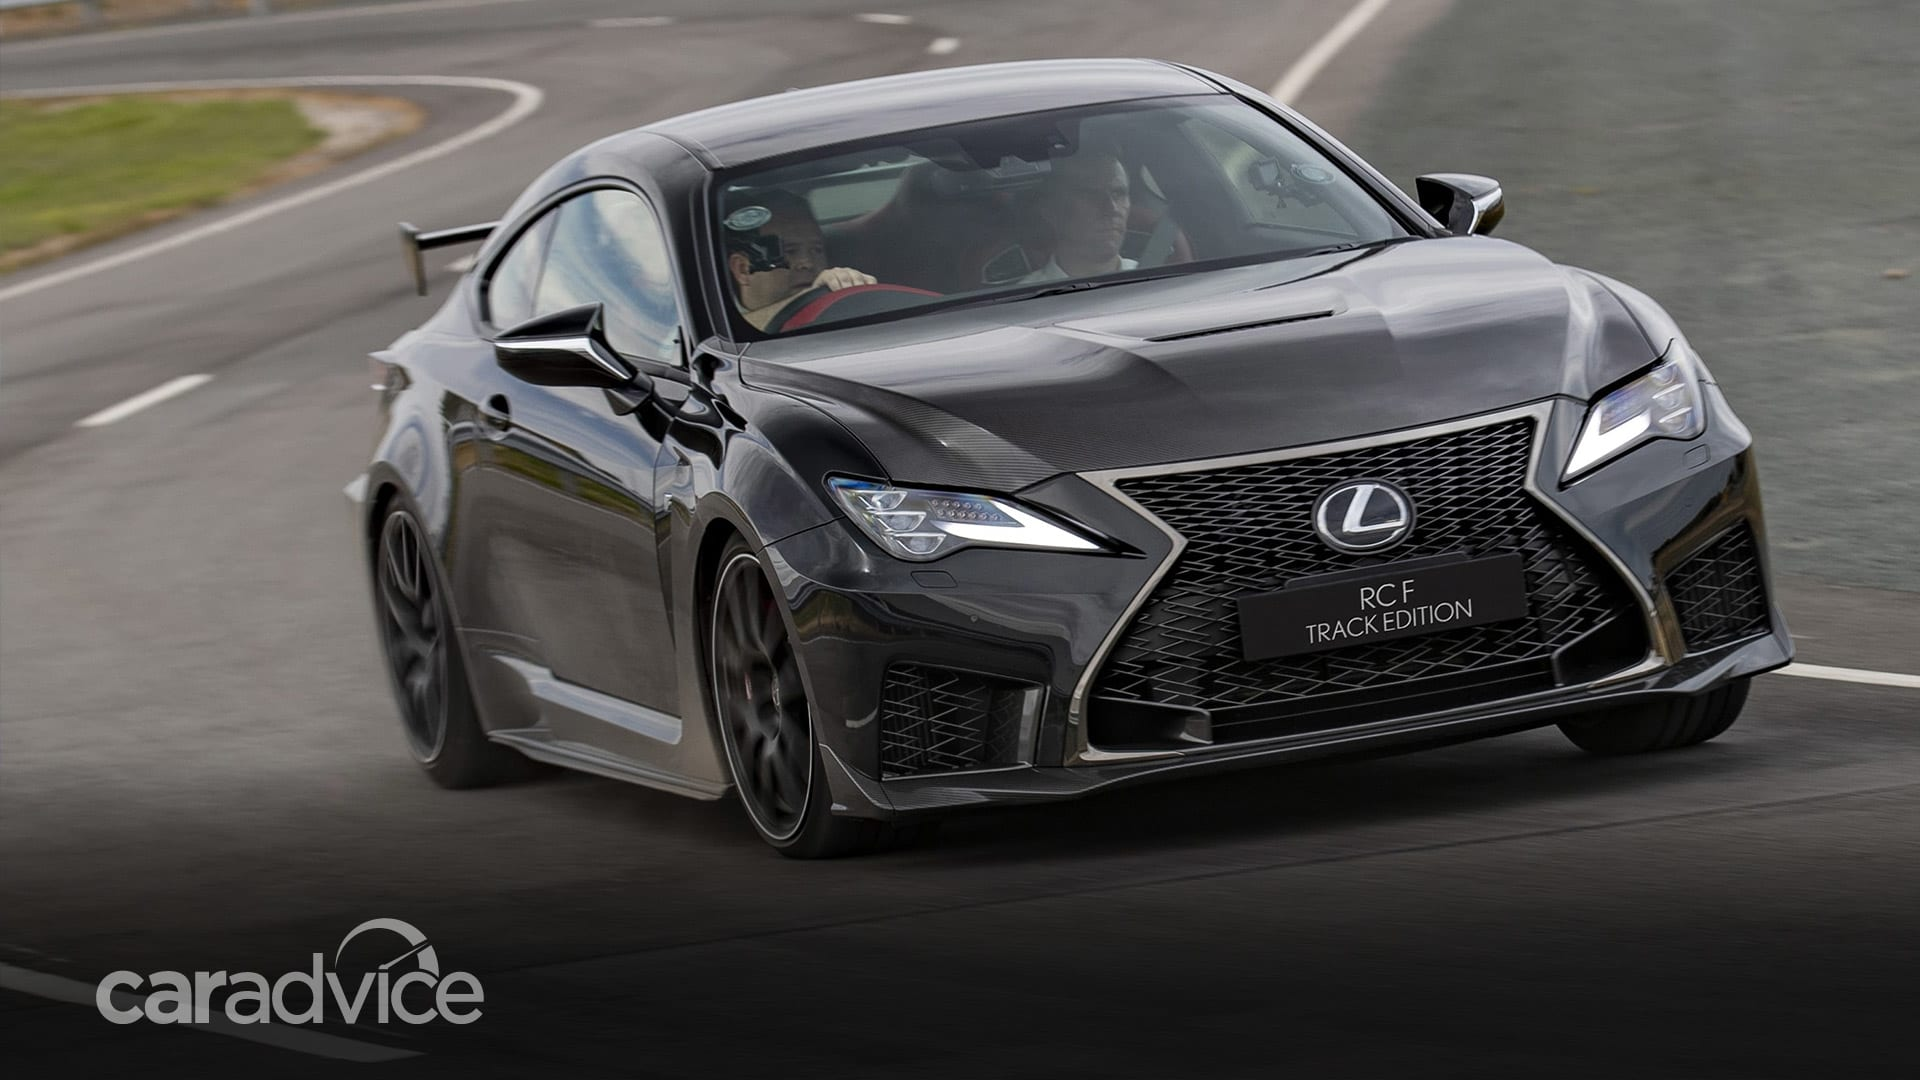 2020 lexus rc f track edition to debut in detroit | caradvice